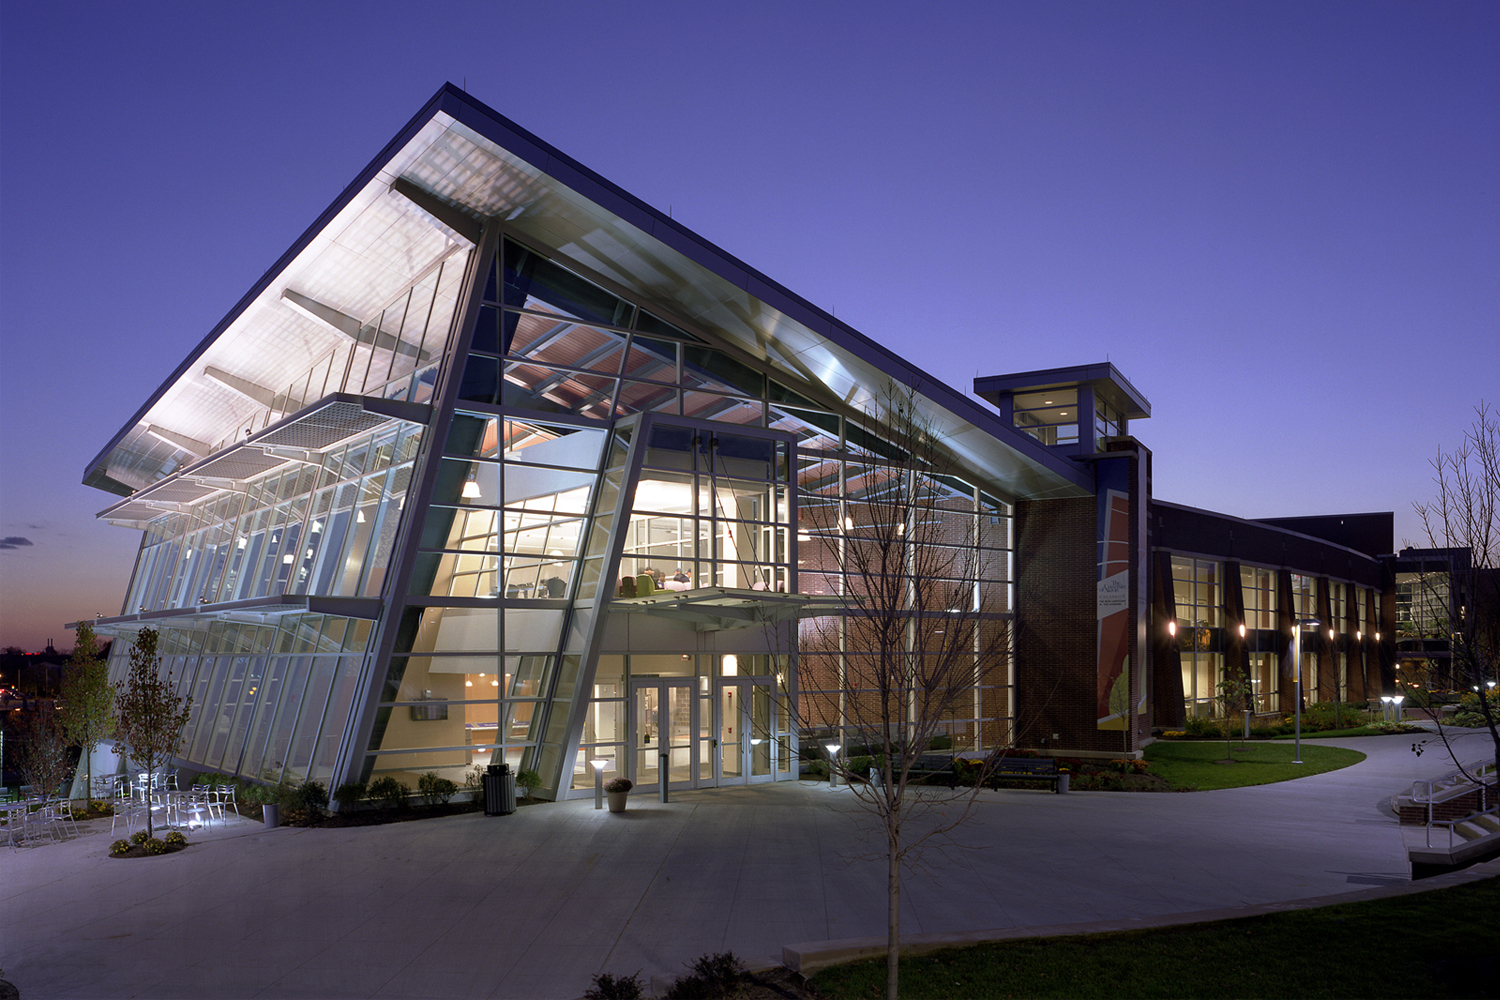 University of Akron Student Centre — Akron